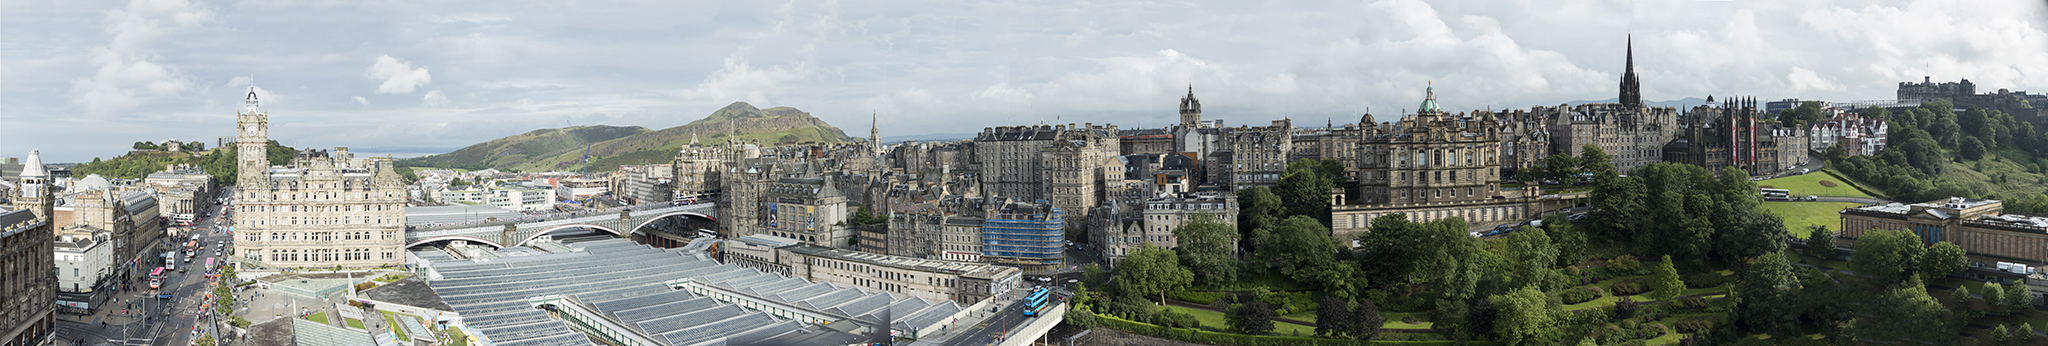 The view from the Scott Monument